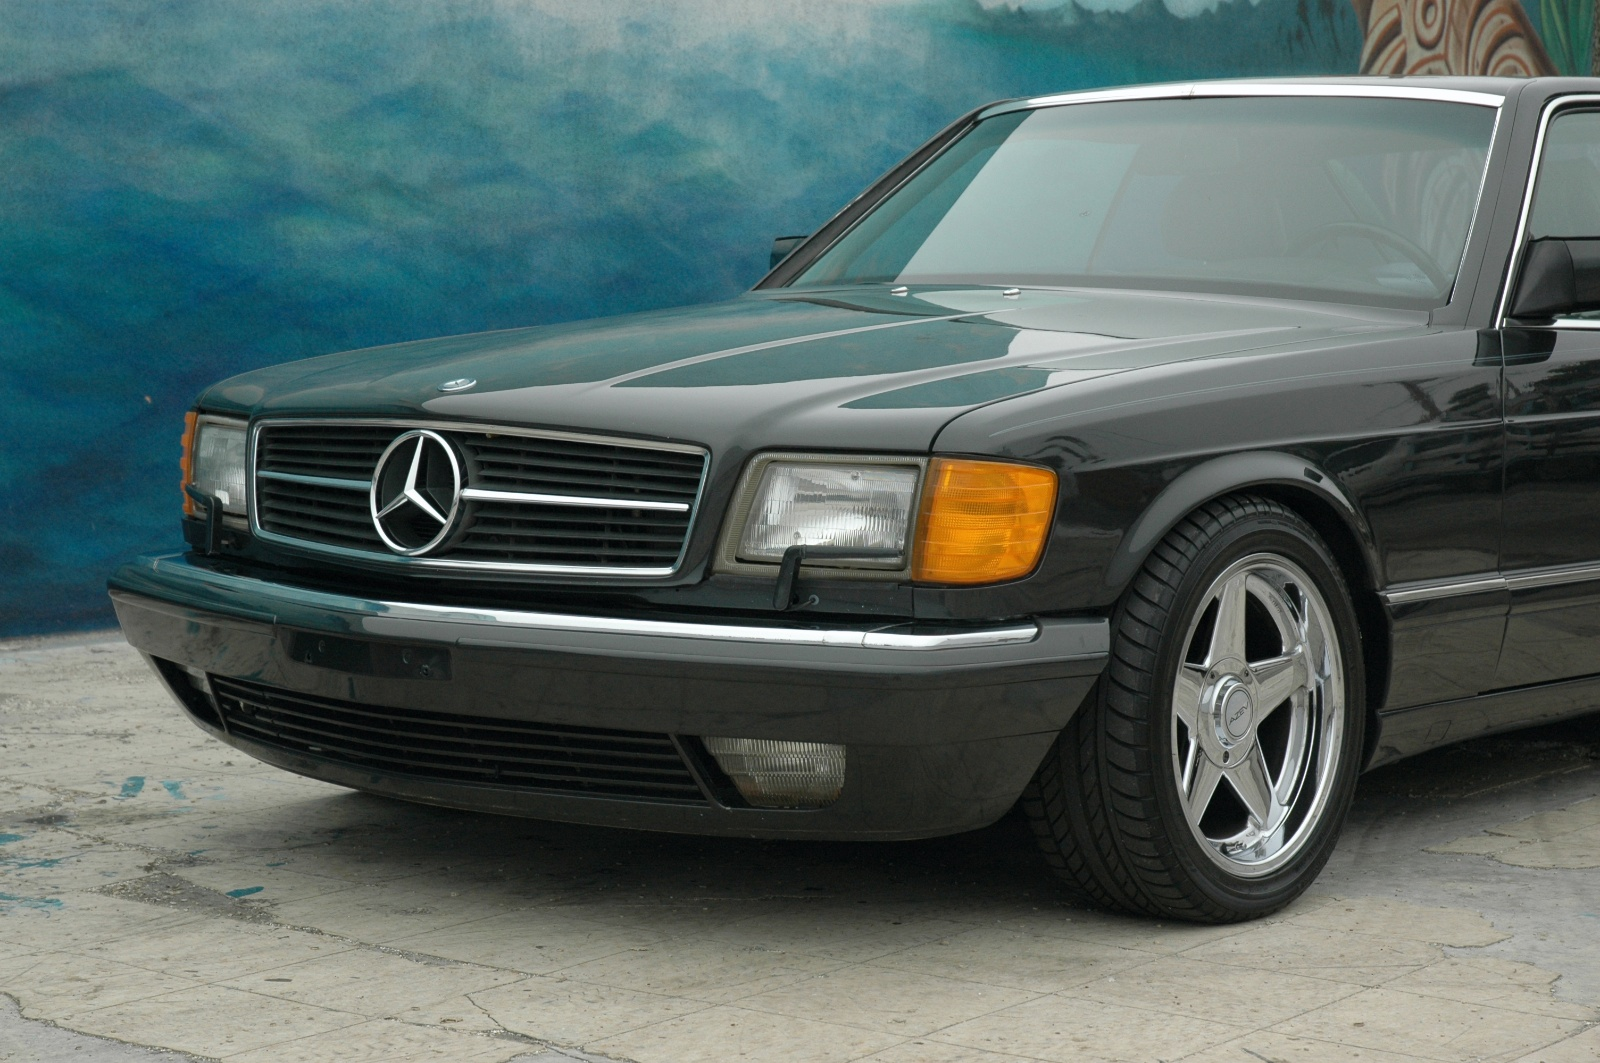 1990 mercedes benz 560 class pictures cargurus for 1986 mercedes benz 560 sec